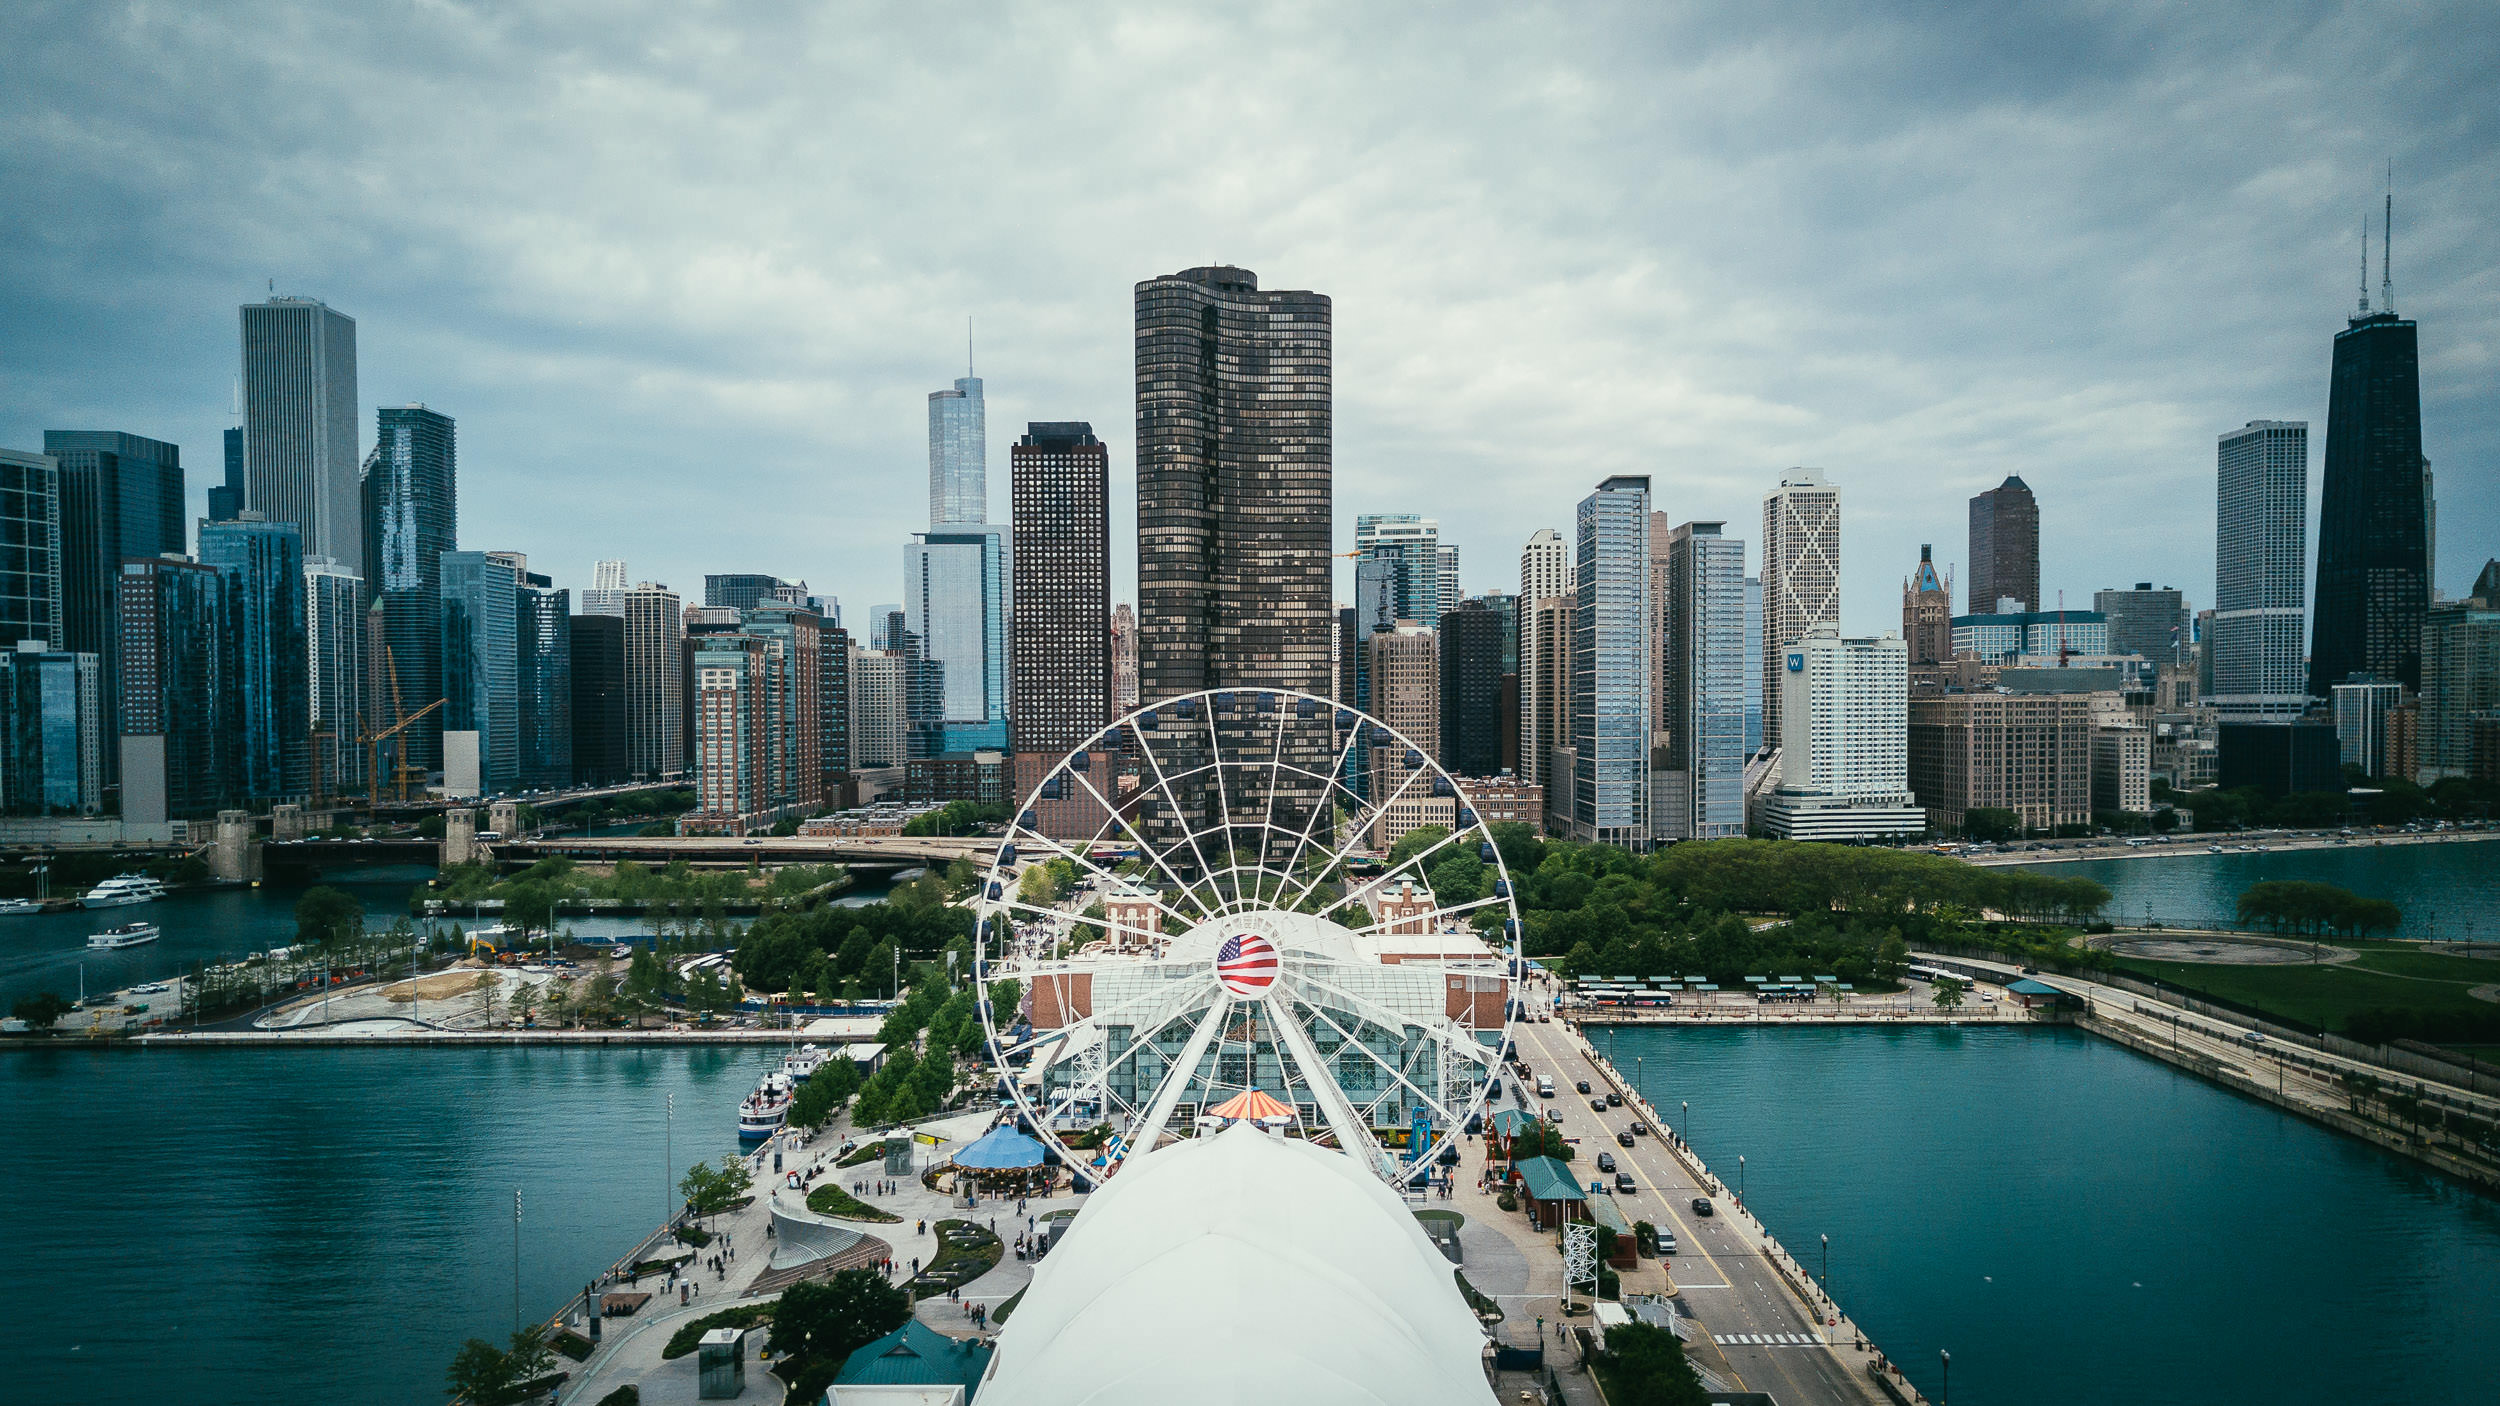 2017.05.26_Mavic_Buckingham_Fountain_Navy_Pier-0033.jpg